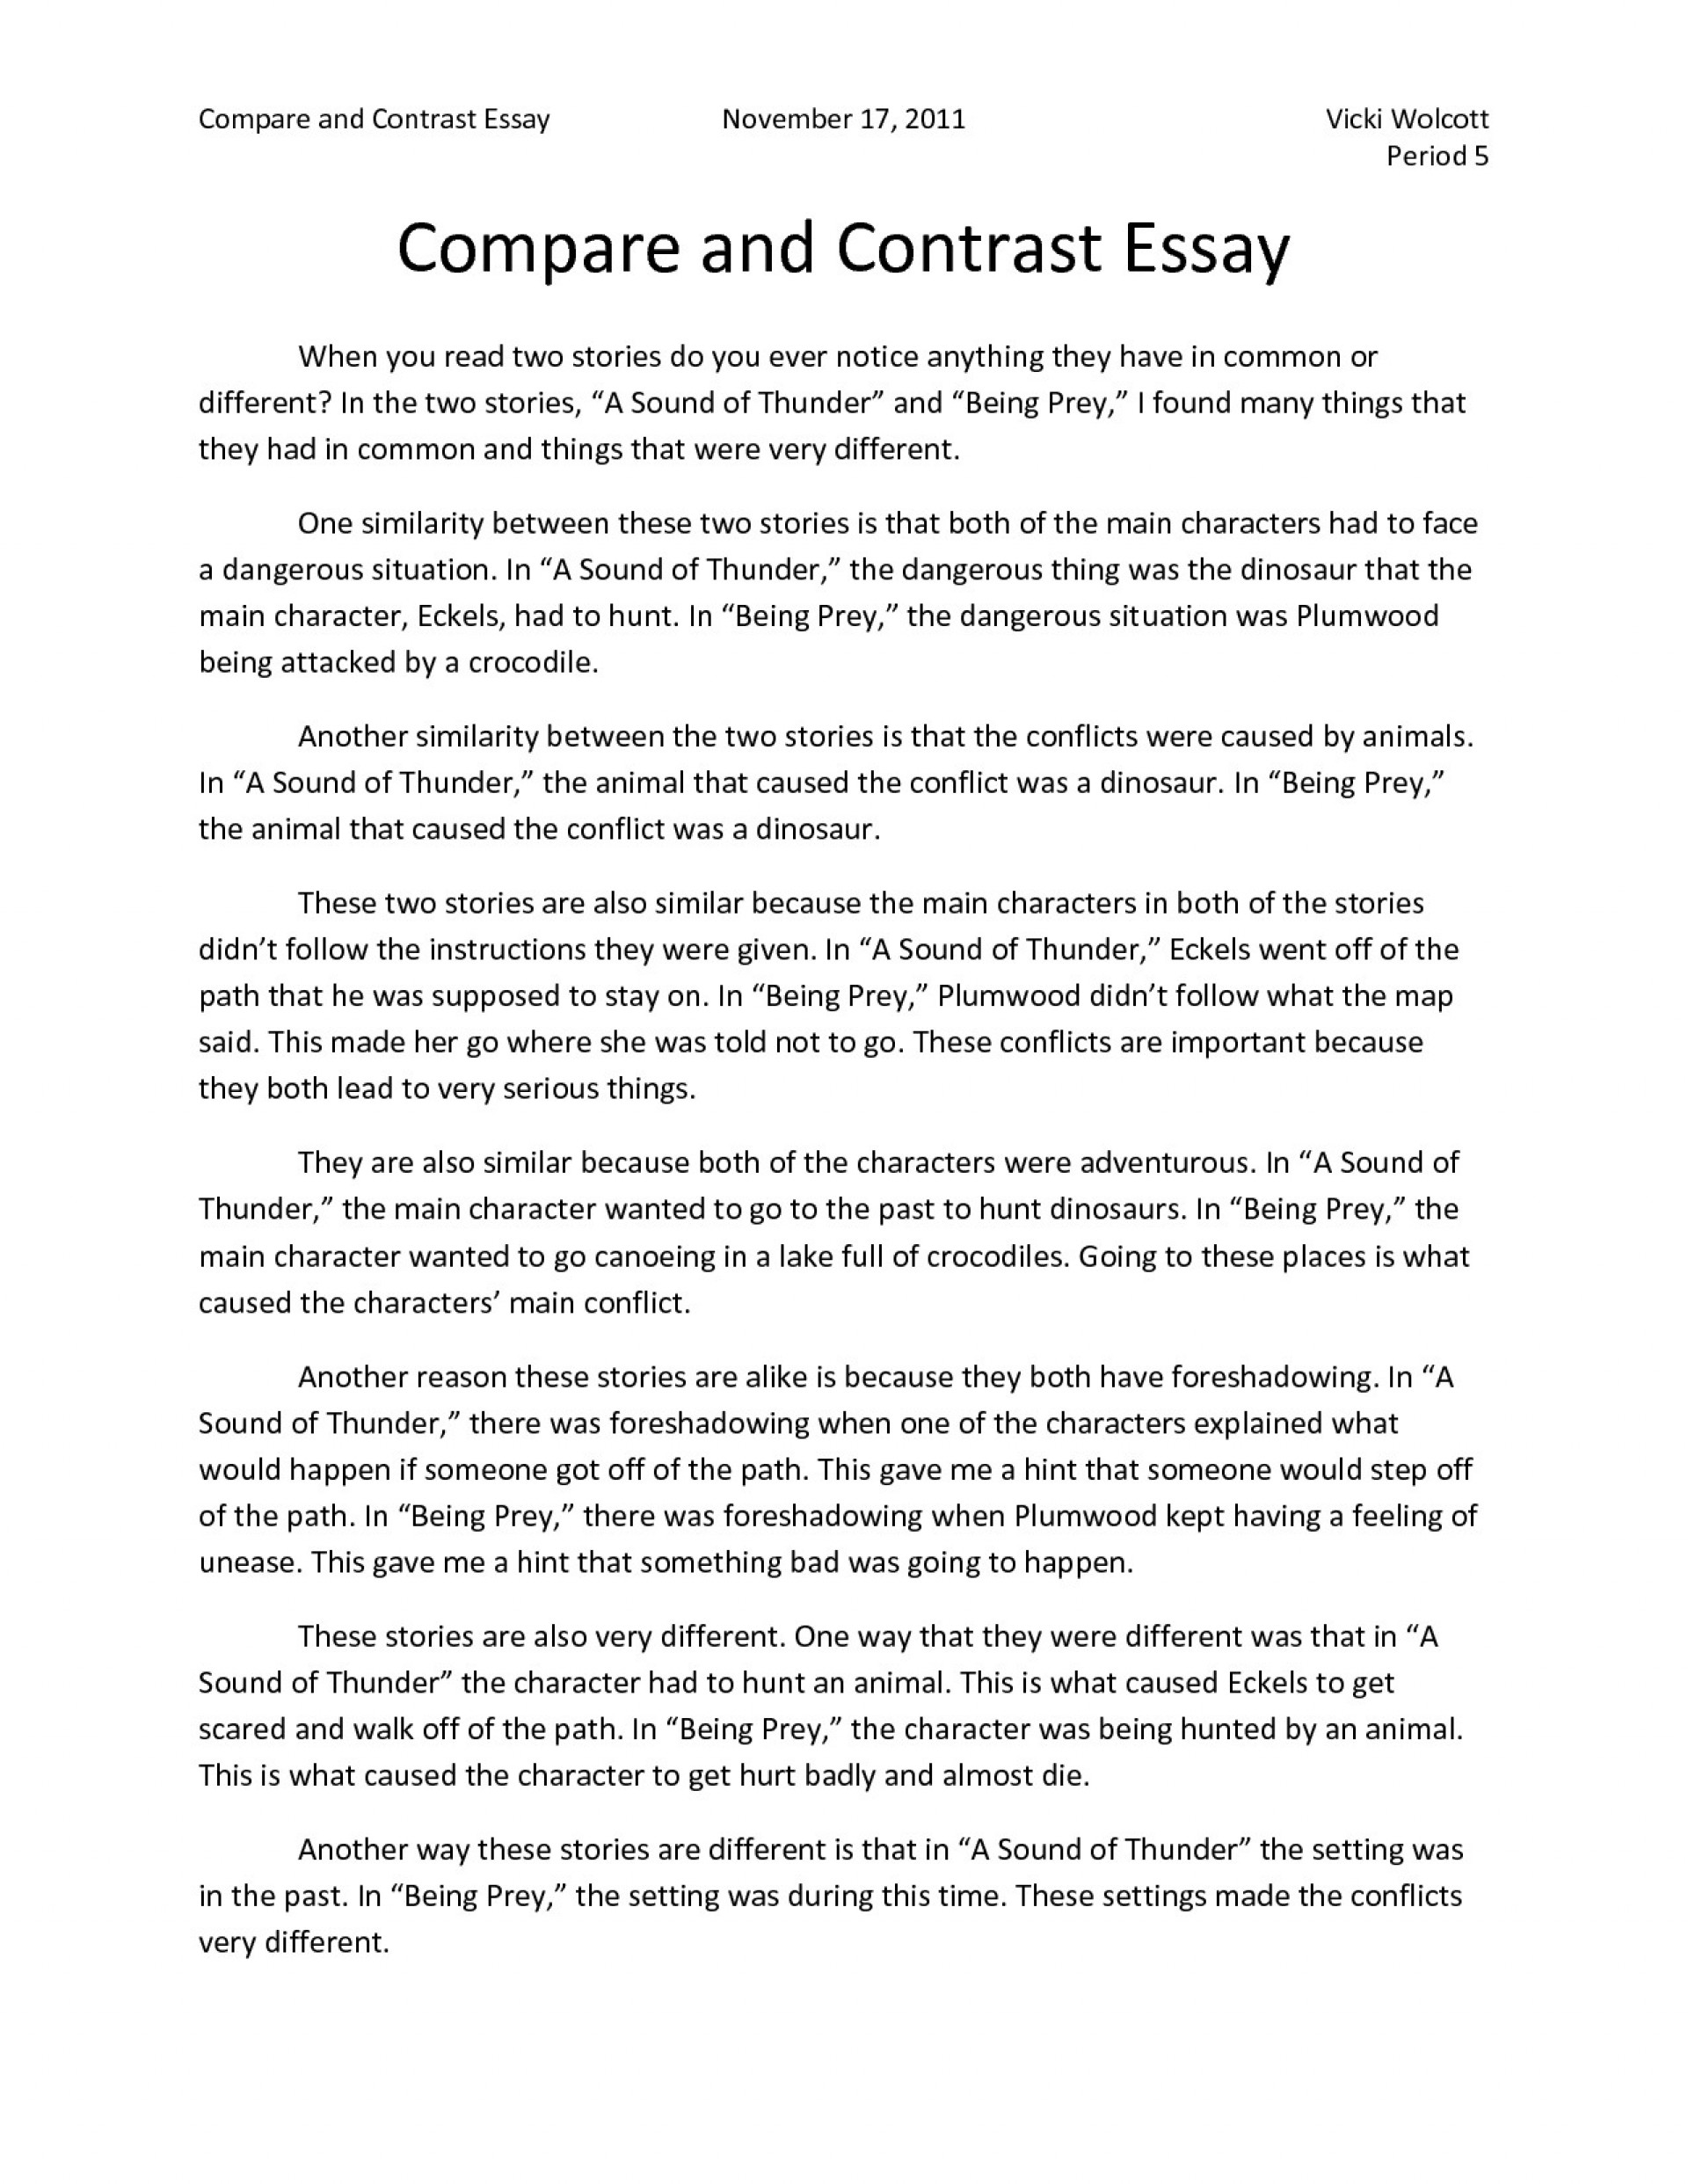 006 Comparing And Contrasting Essay Example Satire Examples Of Comparison Contrast Essays Com How To Write Outstanding A Compare Format Block Conclusion Paragraph For 1920